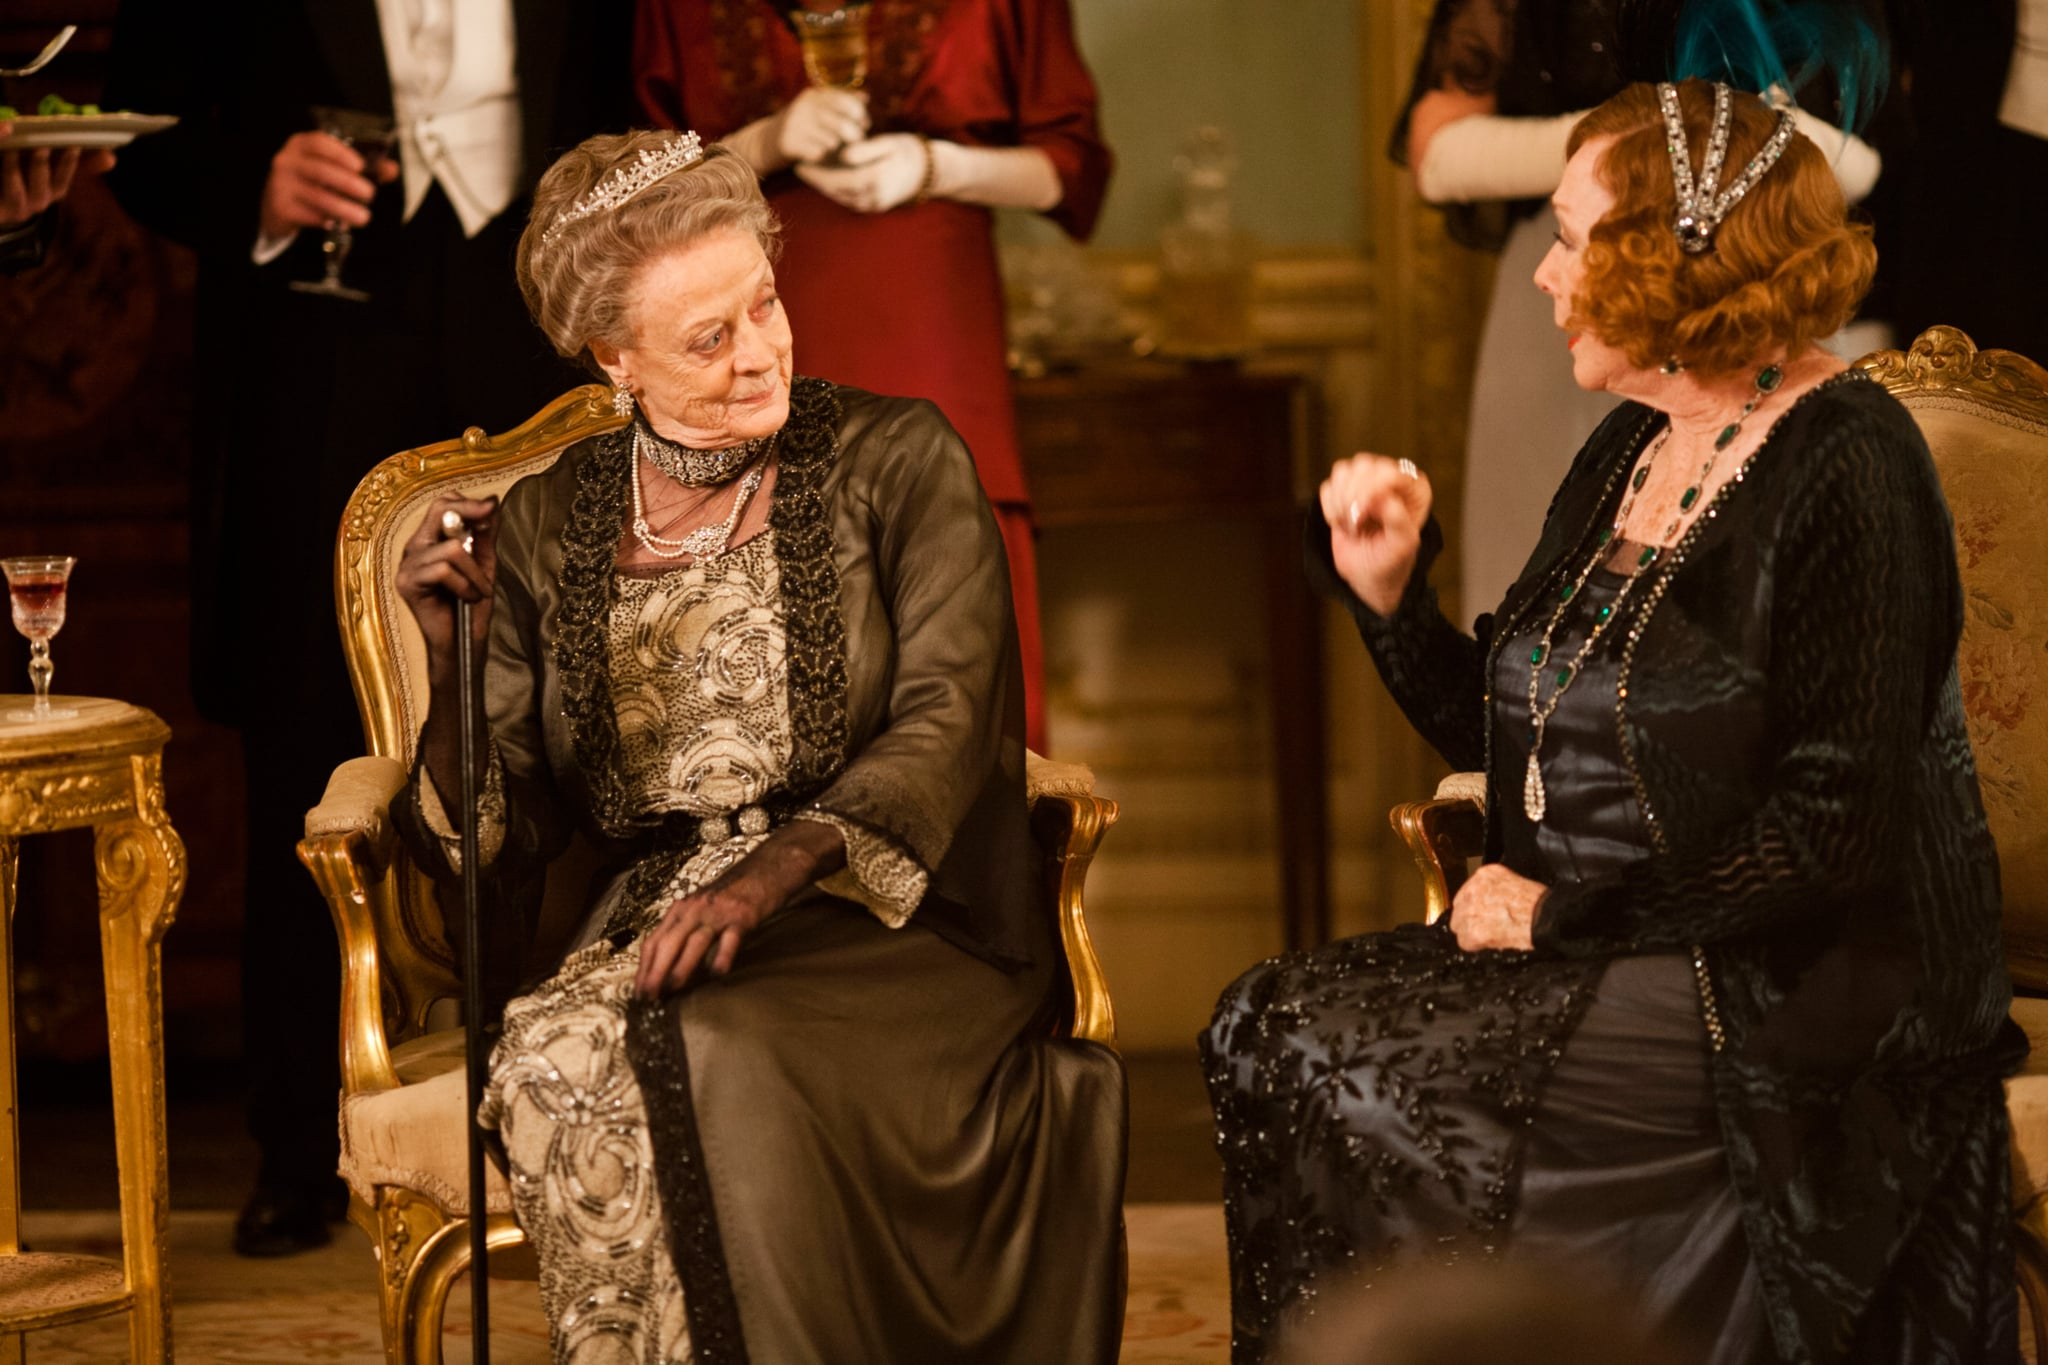 DOWNTON ABBEY, l-r: Maggie Smith, Shirley MacLaine, (Season 3, aired January 6, 2013), 2010-, ph: Nick Briggs/  Carnival Films for Masterpiece/PBS / Courtesy: Everett Collection